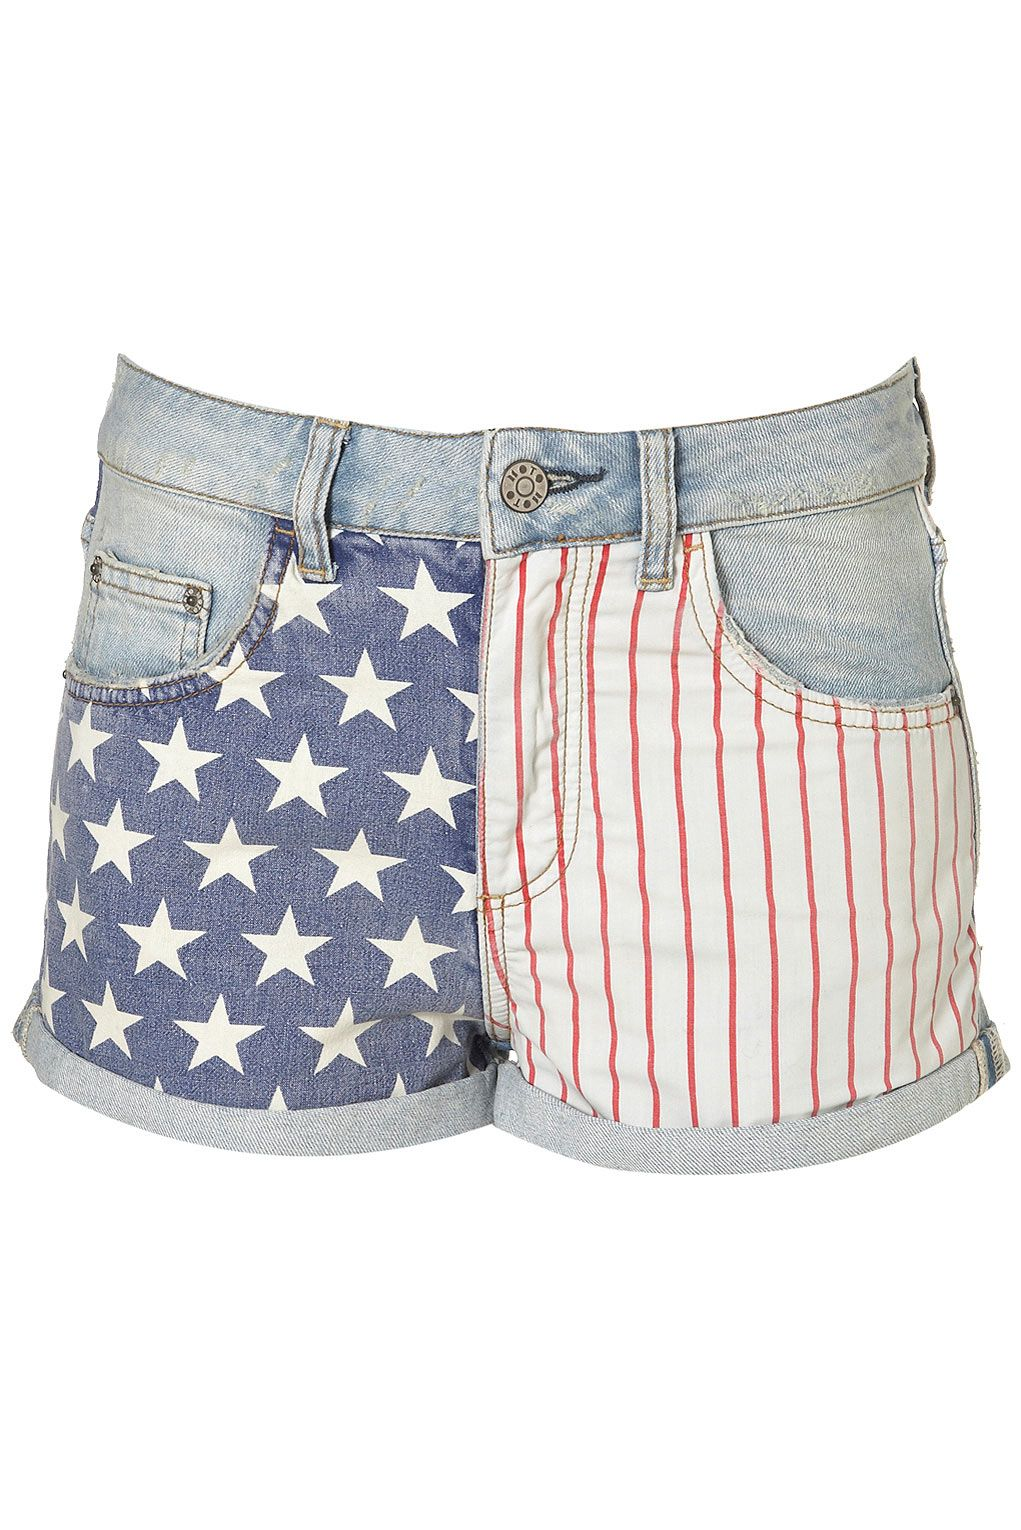 can't go wrong, with some red white and blue. What is great about these shorts is that they can be made and customized at home. fabric+fabric glue+any shorts, you can even use bleach!